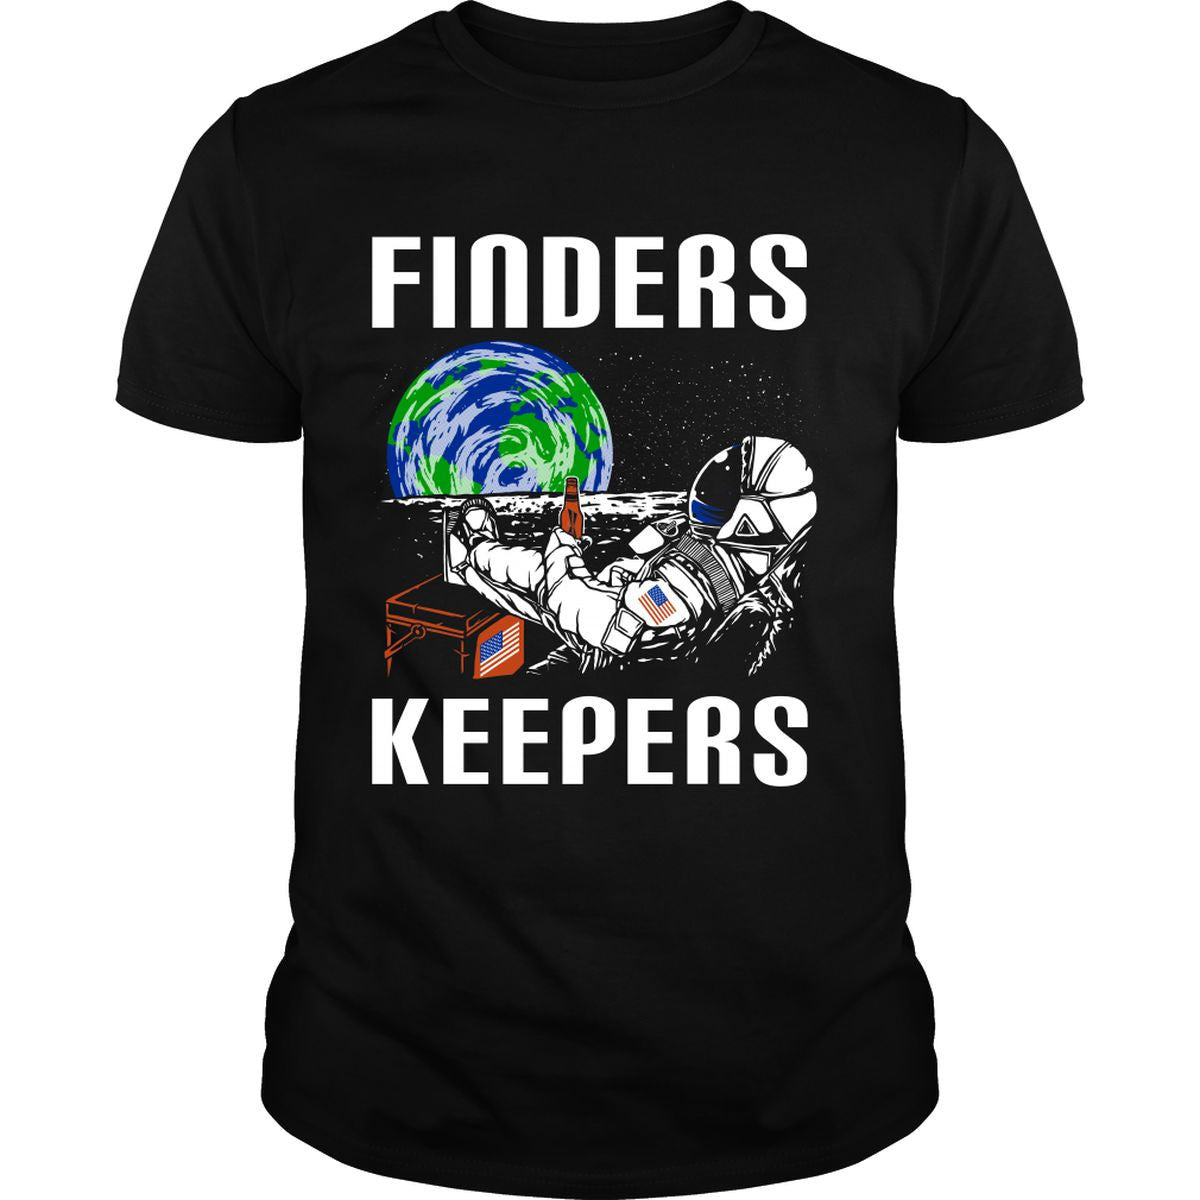 Finders Keepers Shirt